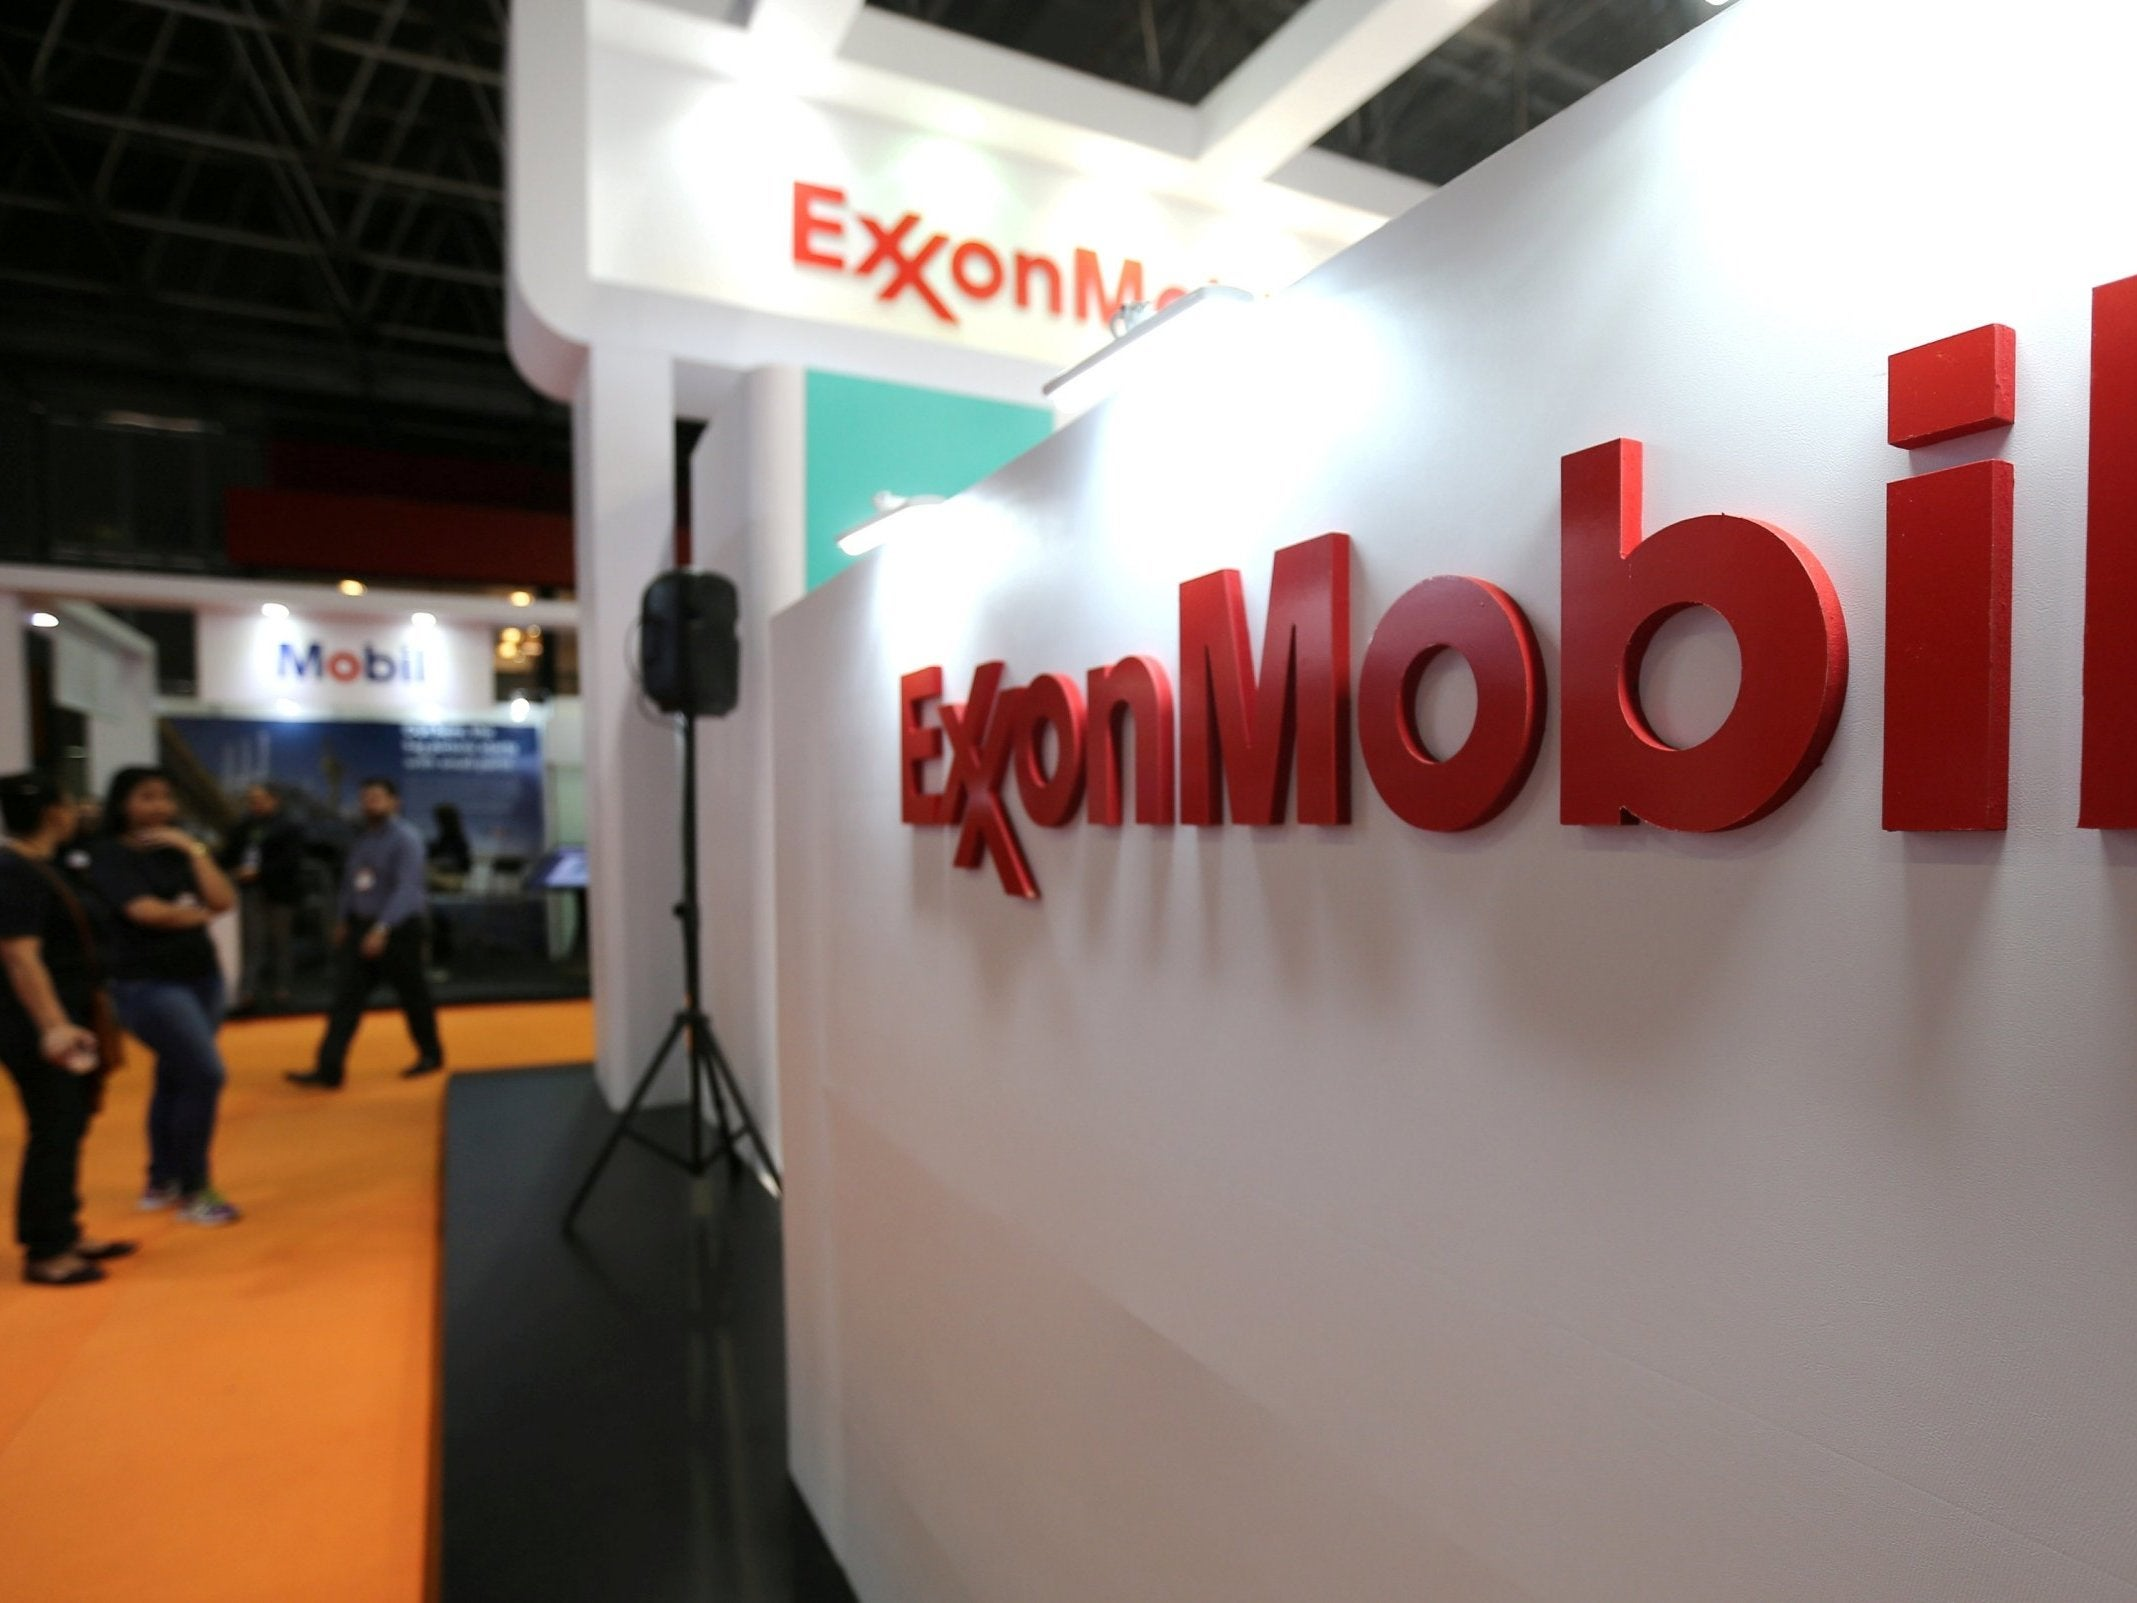 ExxonMobil - latest news, breaking stories and comment - The